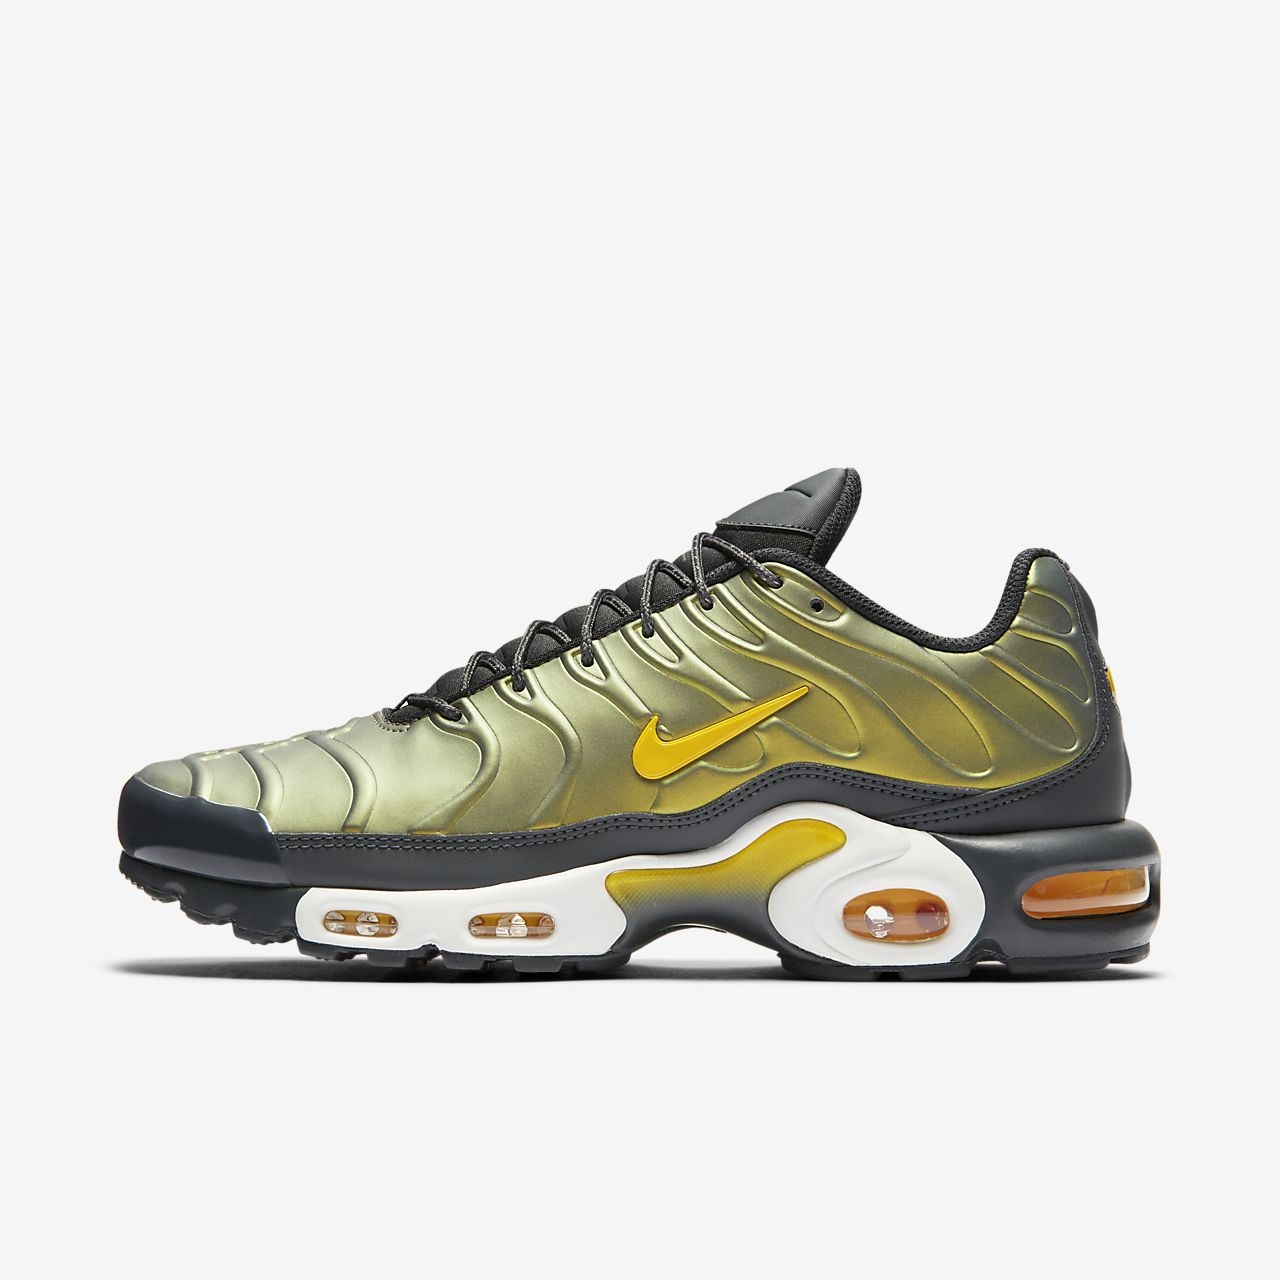 new styles 68ba6 03ff4 ... Chaussure Nike Air Max Plus SE pour Homme